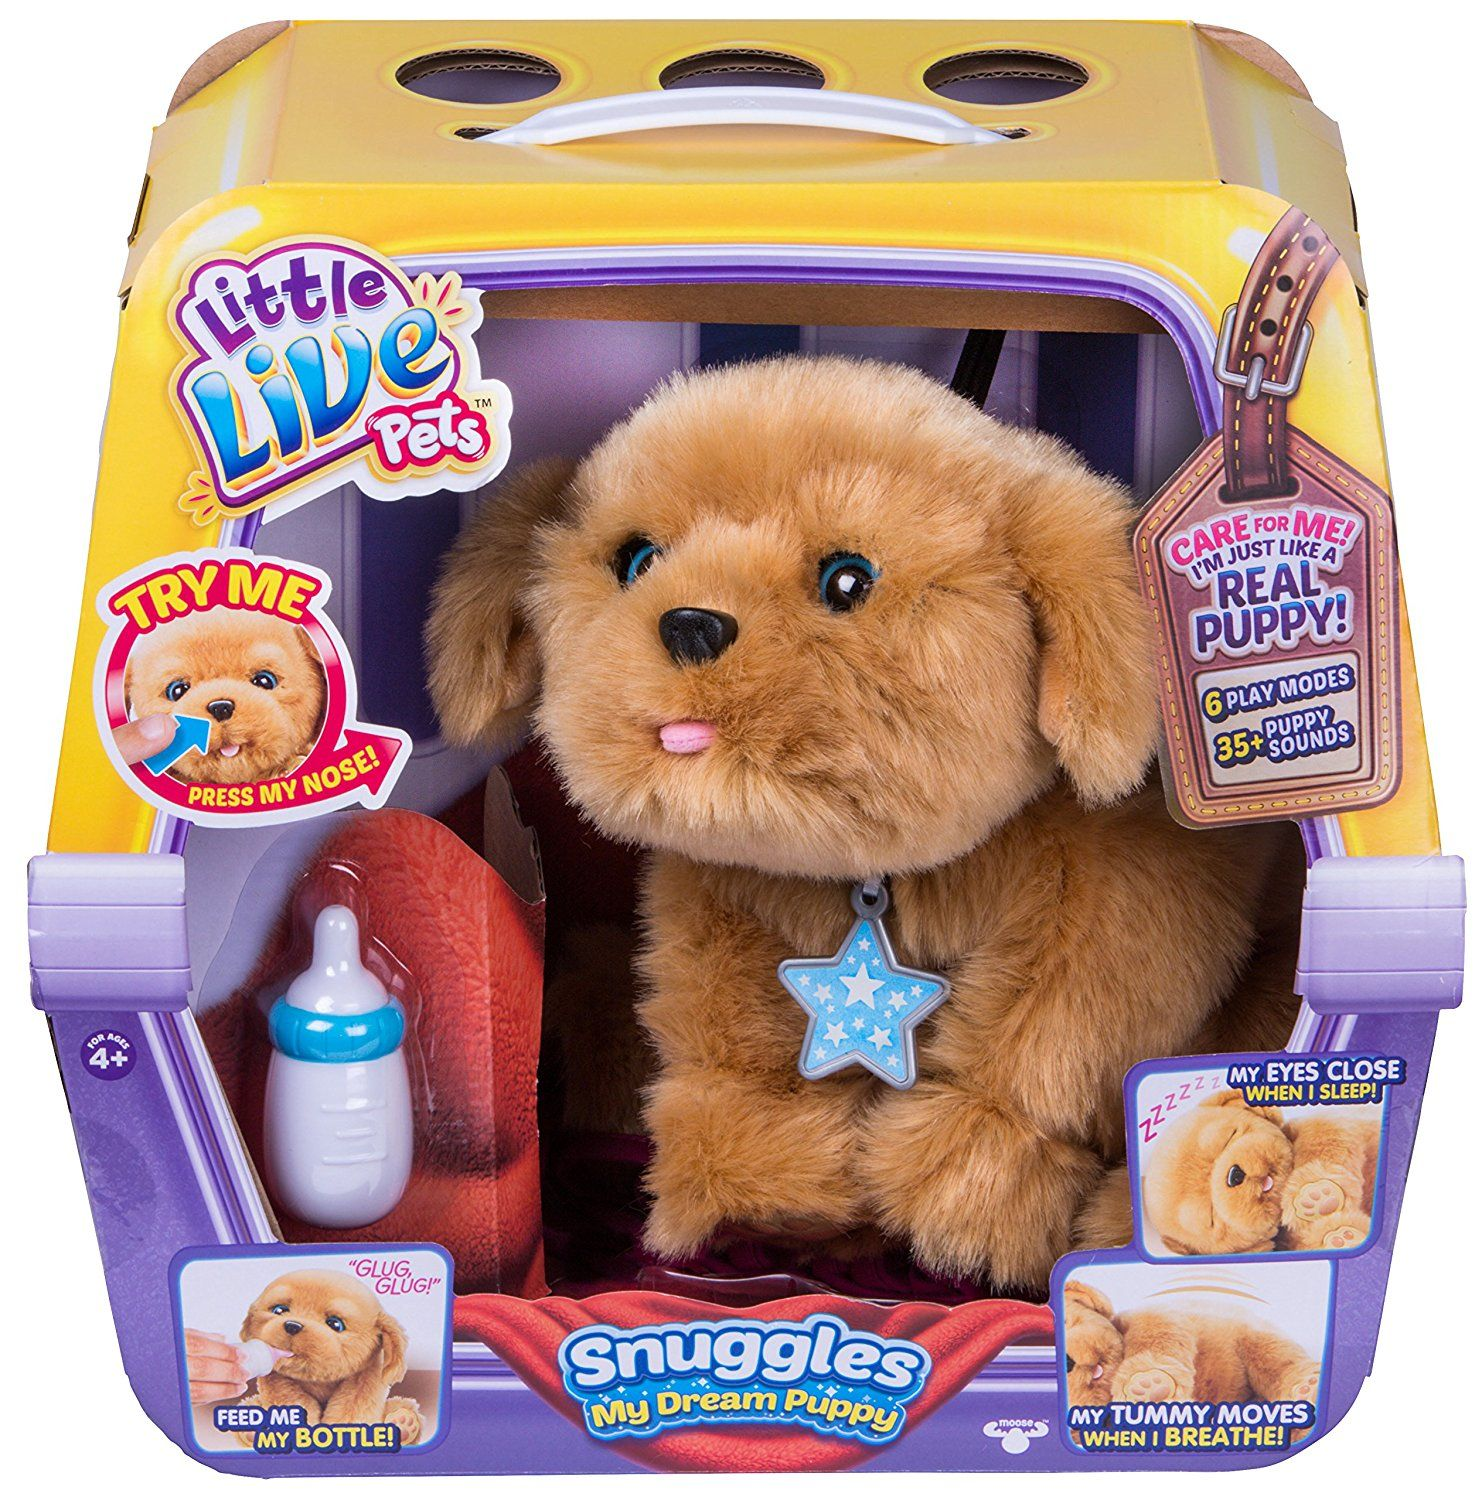 Little Live Pets Puppy My Dream Puppy Play Dog Snuggles Stuff Animal Plush New Little Live Pets Toy Puppies Pet Puppy